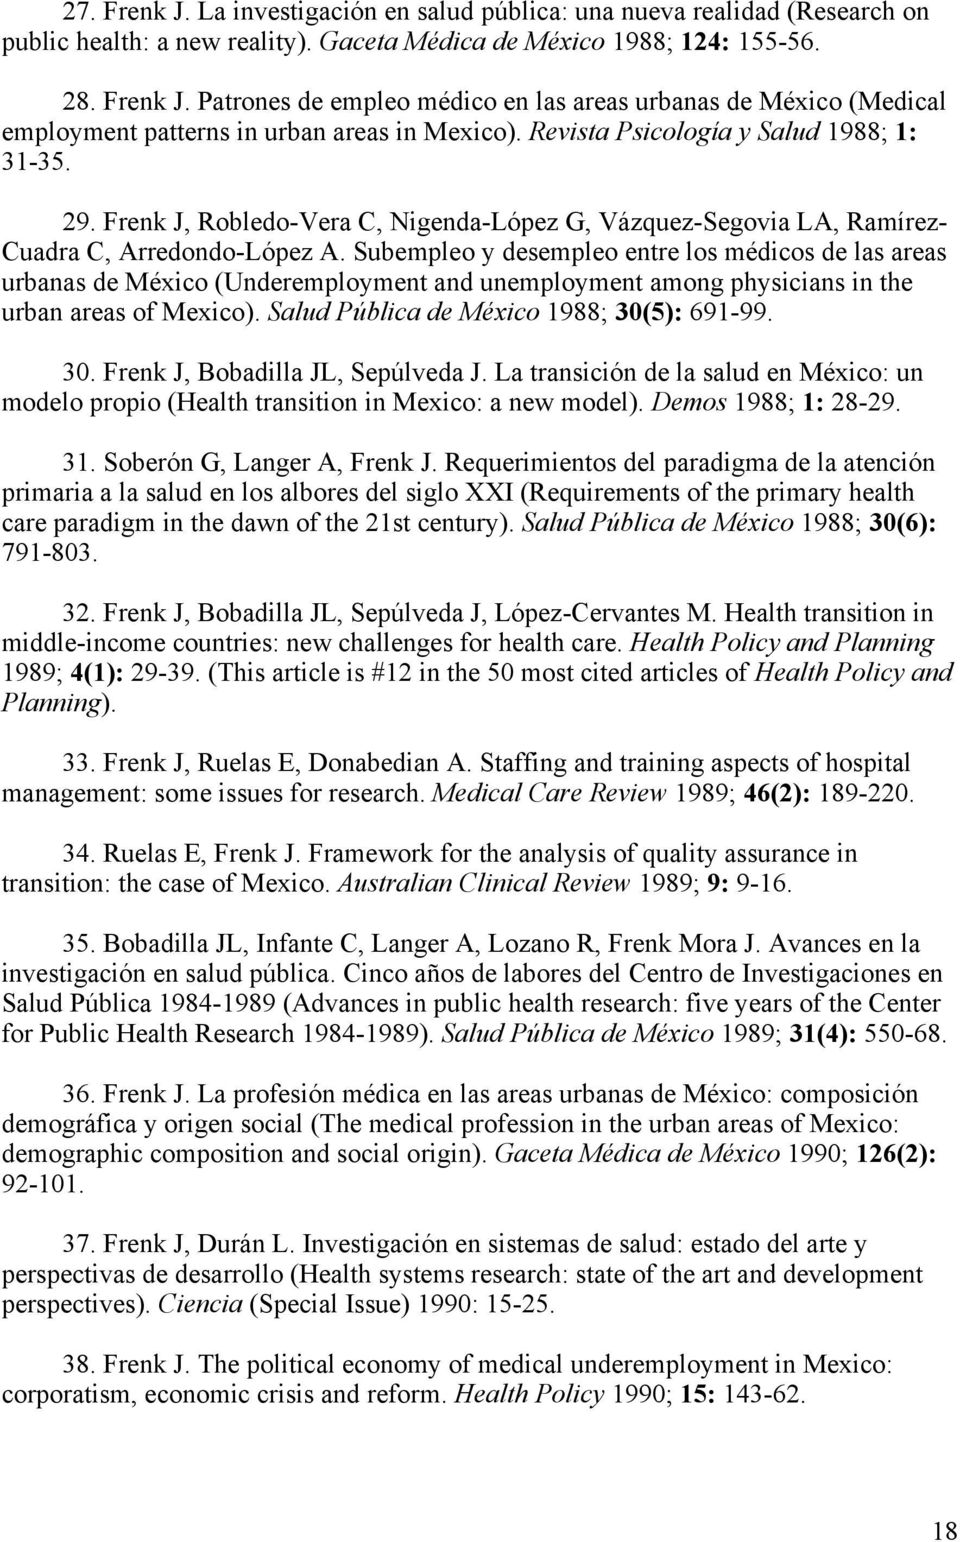 Subempleo y desempleo entre los médicos de las areas urbanas de México (Underemployment and unemployment among physicians in the urban areas of Mexico). Salud Pública de México 1988; 30(5): 691-99.